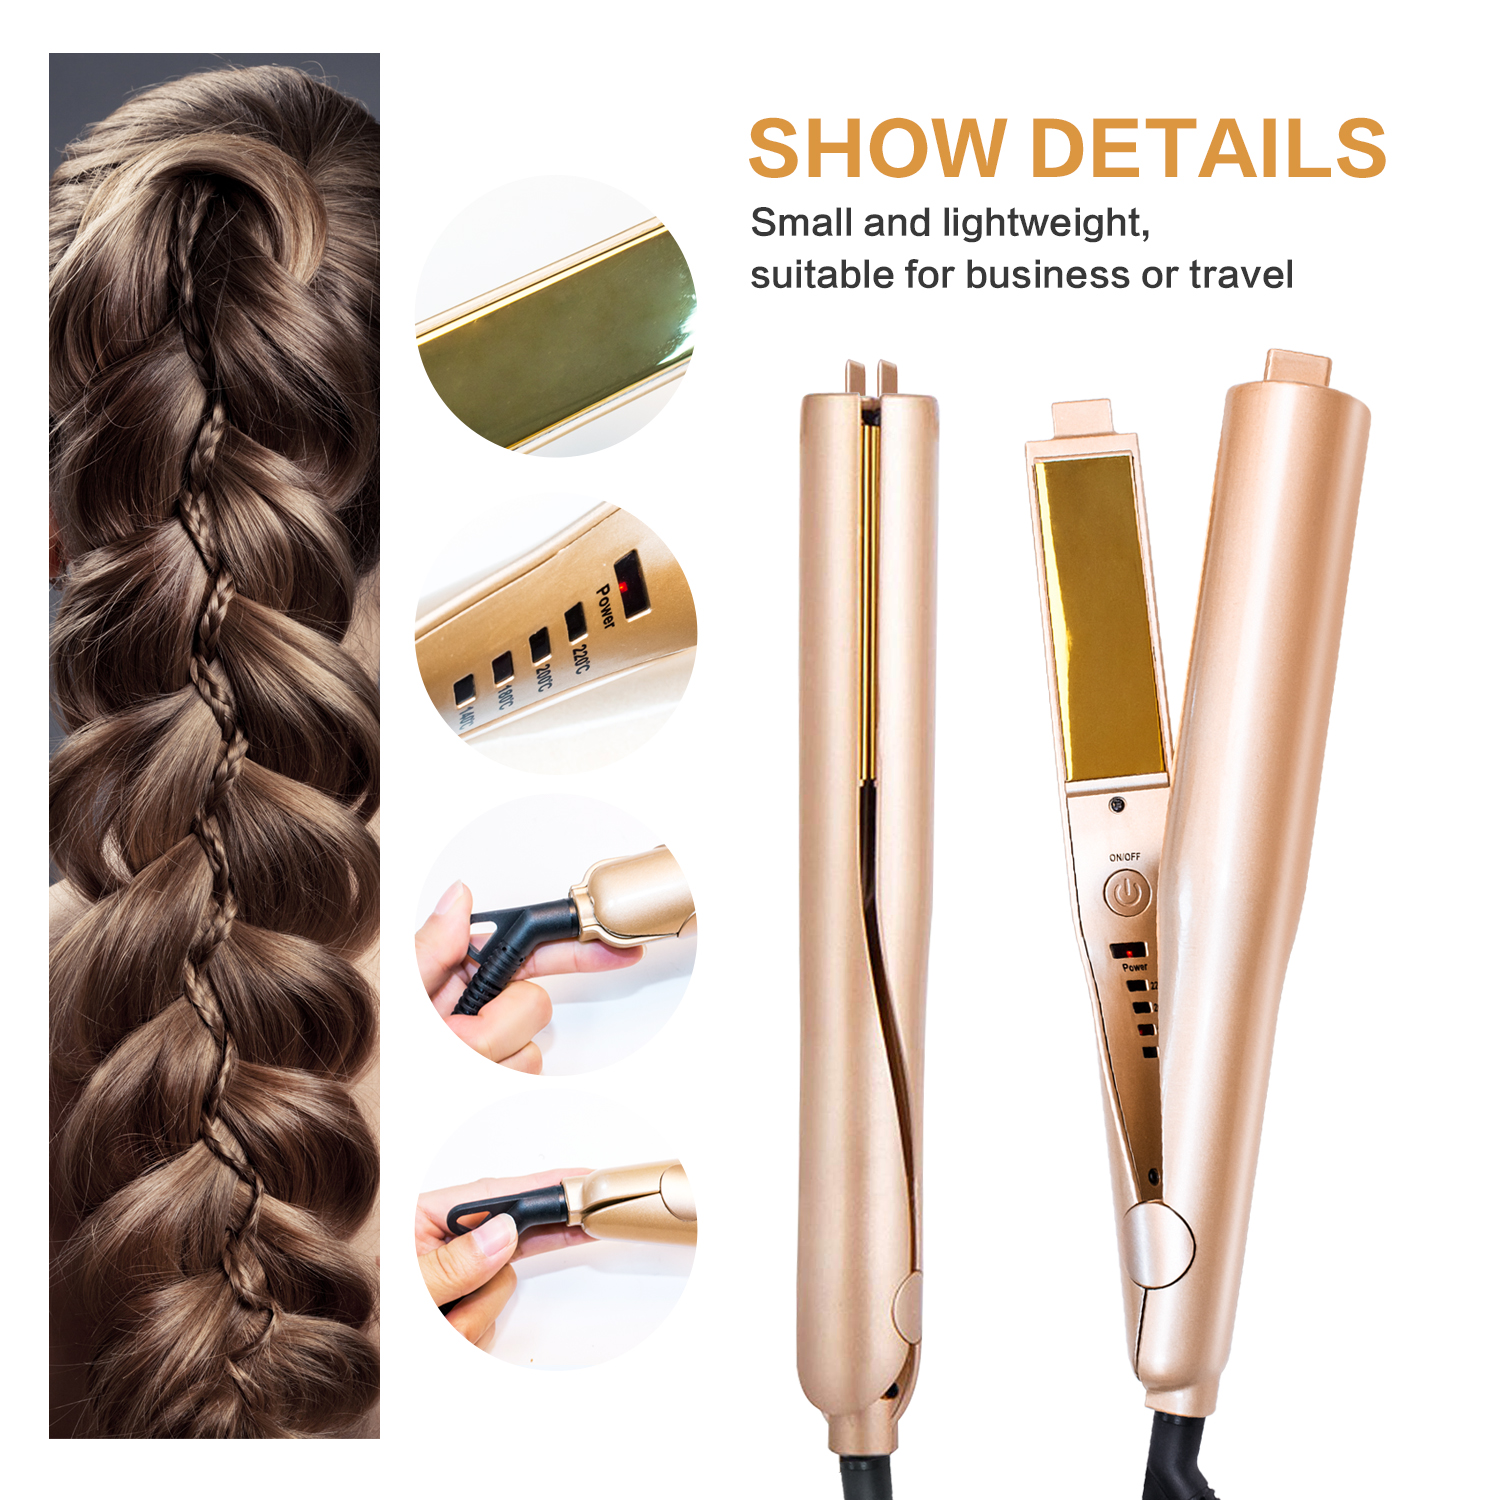 2 In 1 Gold Titanium Flat Iron Twist Hair Curling & Hair Straightener Irons Styling 1 Inch Straightening & Curls Hair Care Tool